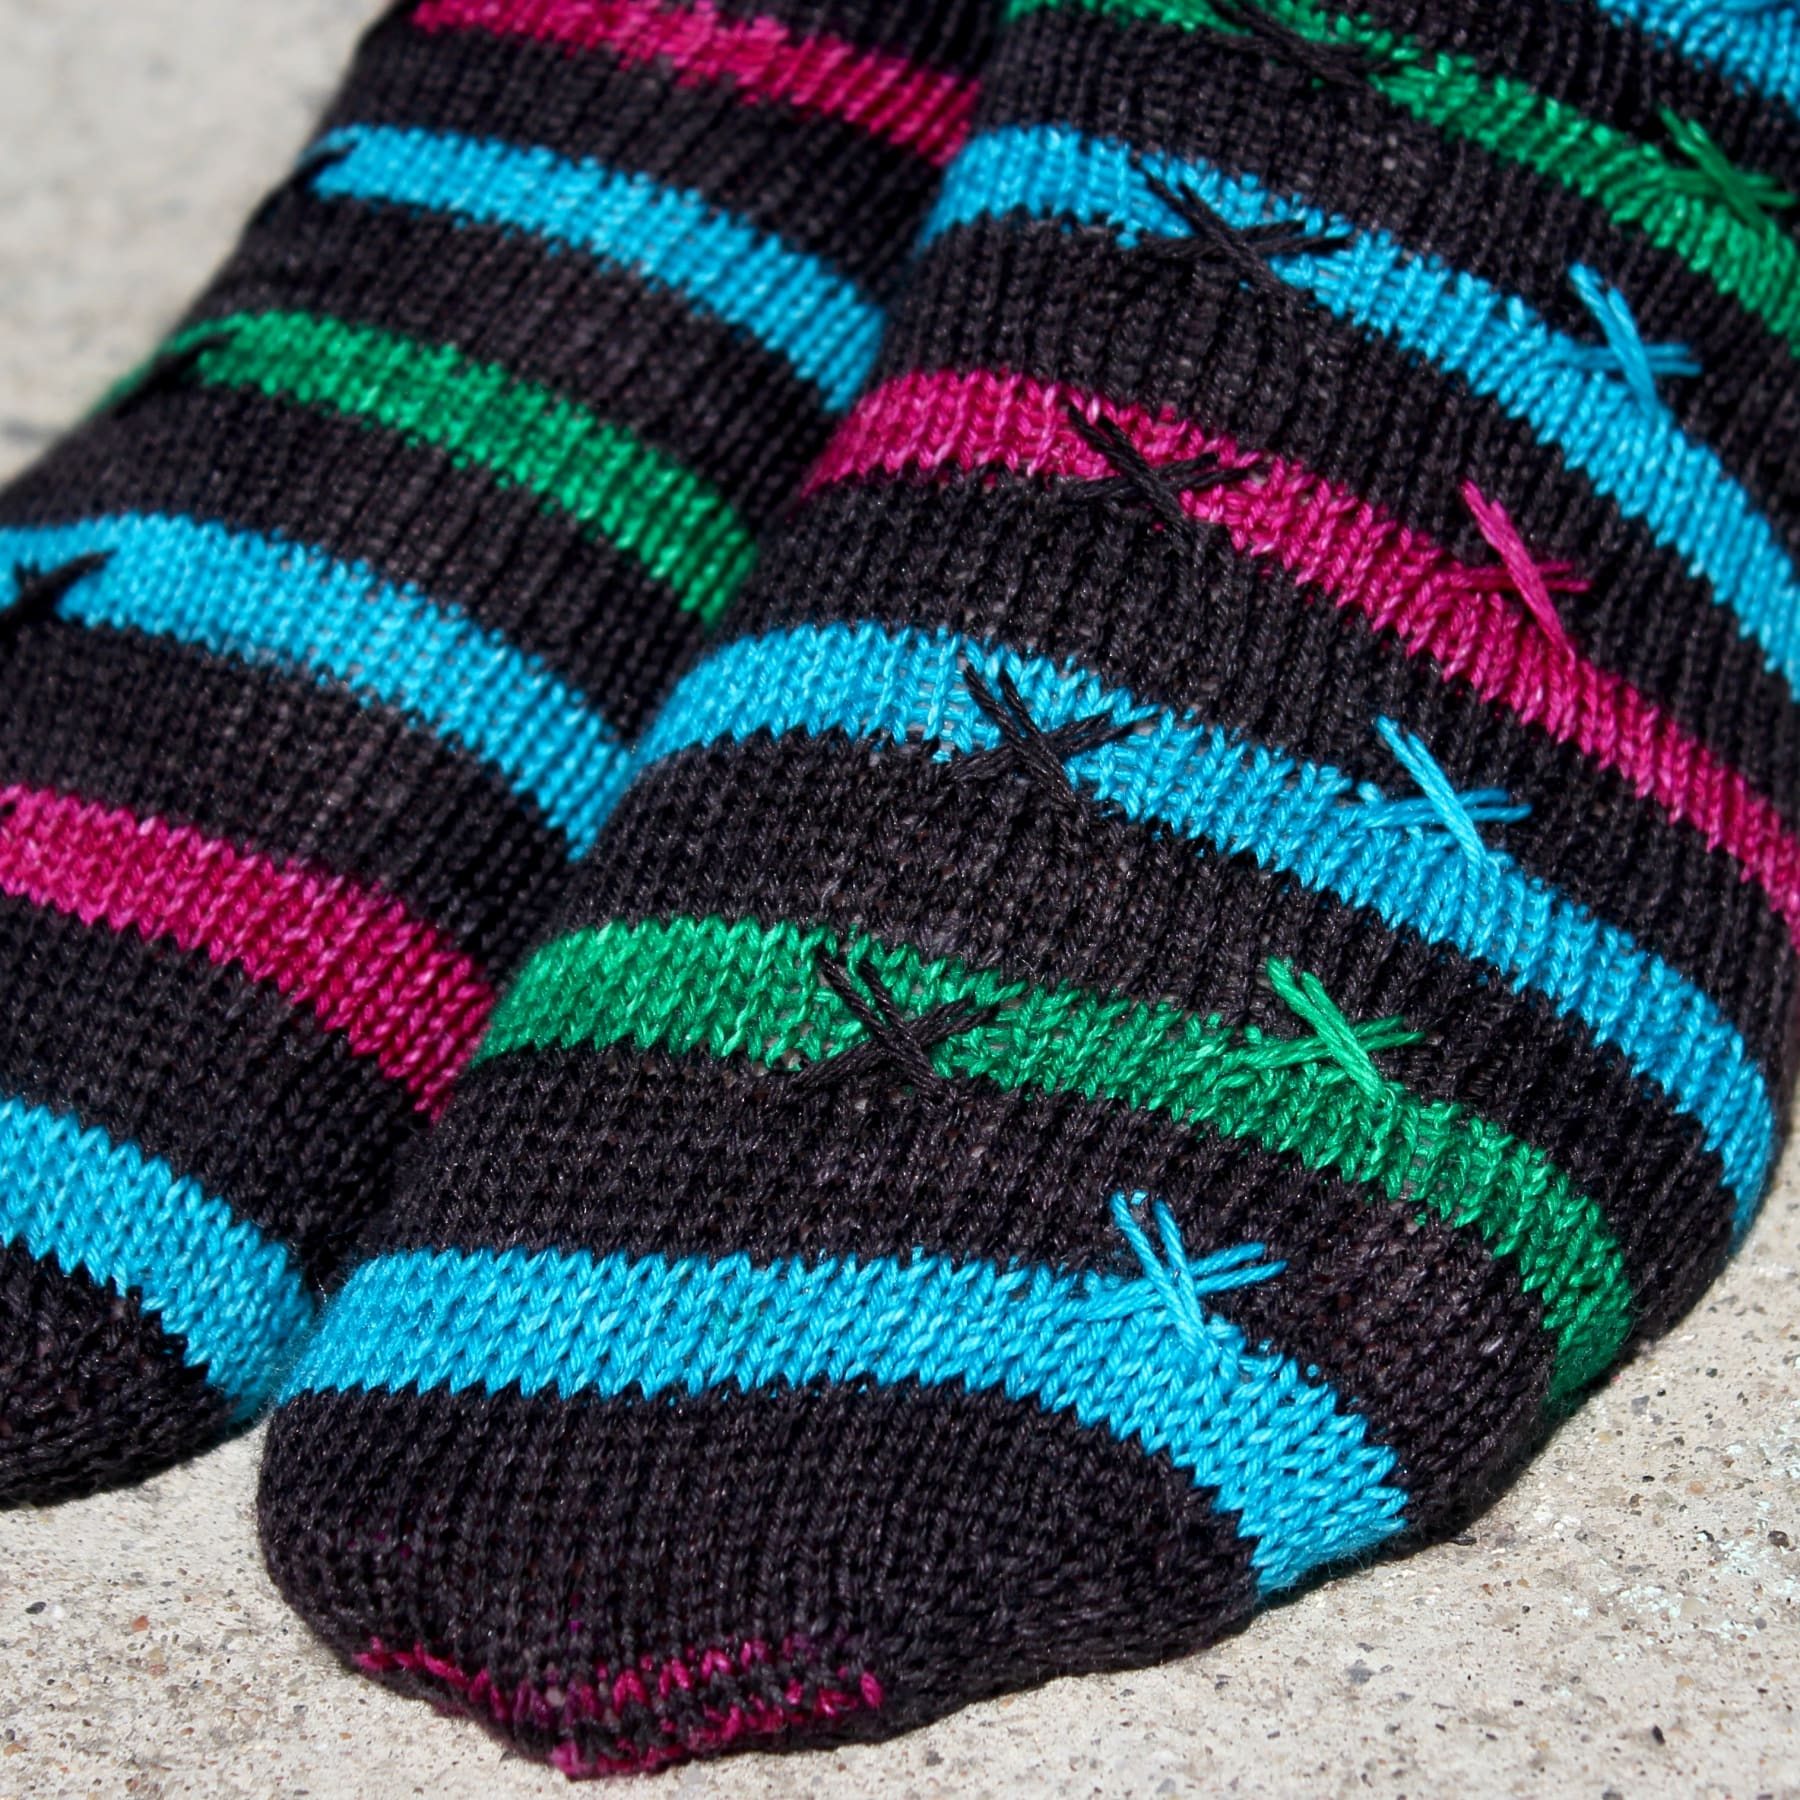 Close up of striped knitted socks with X stitch details on top of the stripes.